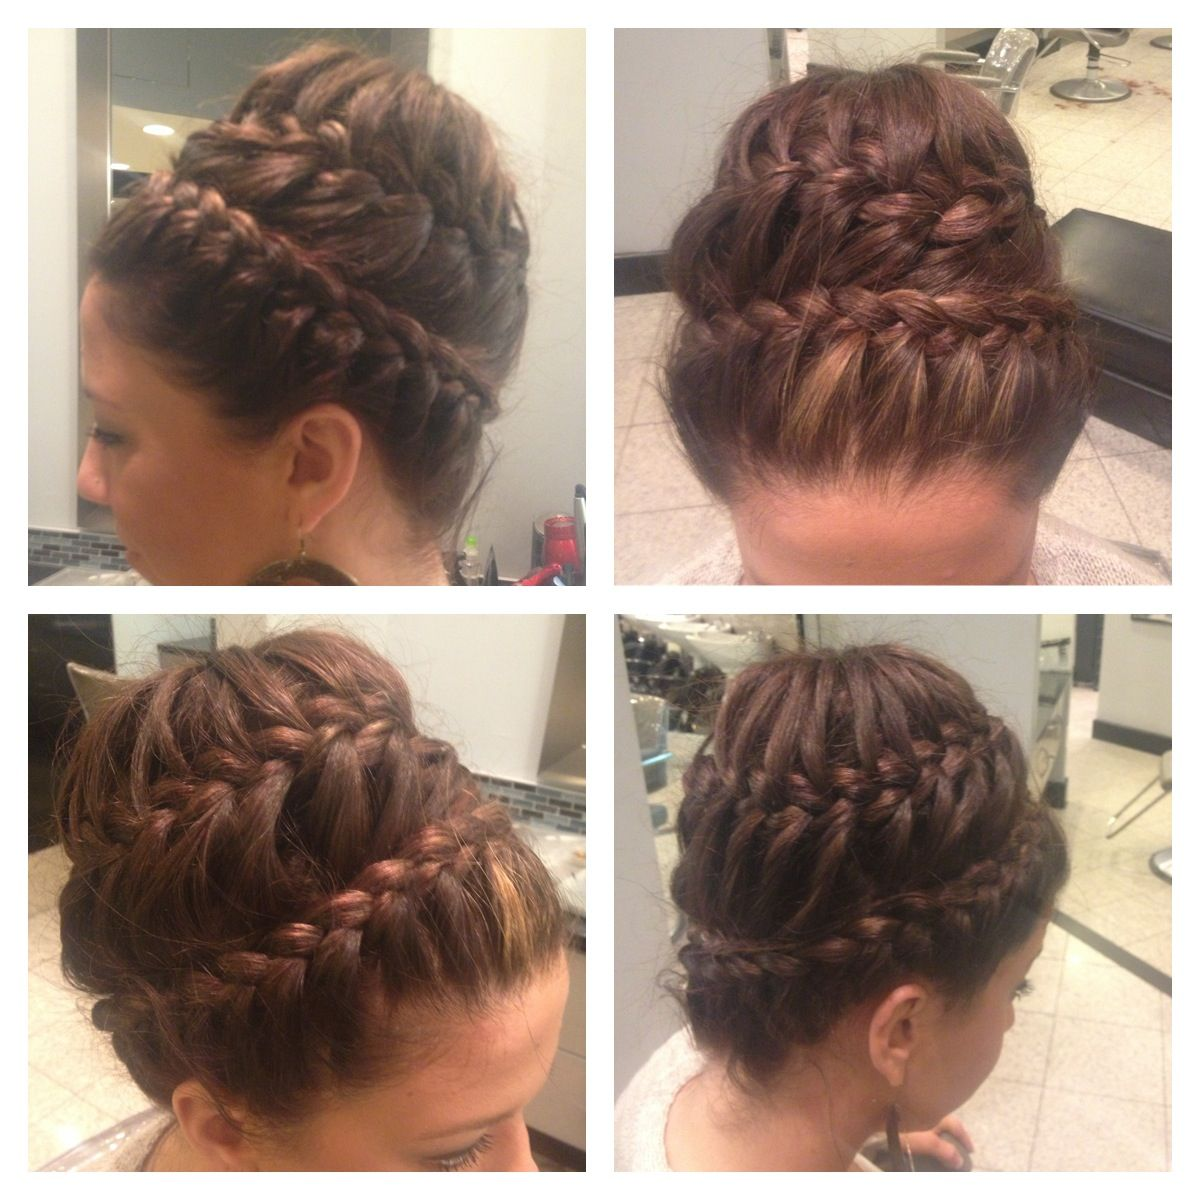 Updo braids formal semi formal hair glamorous formal